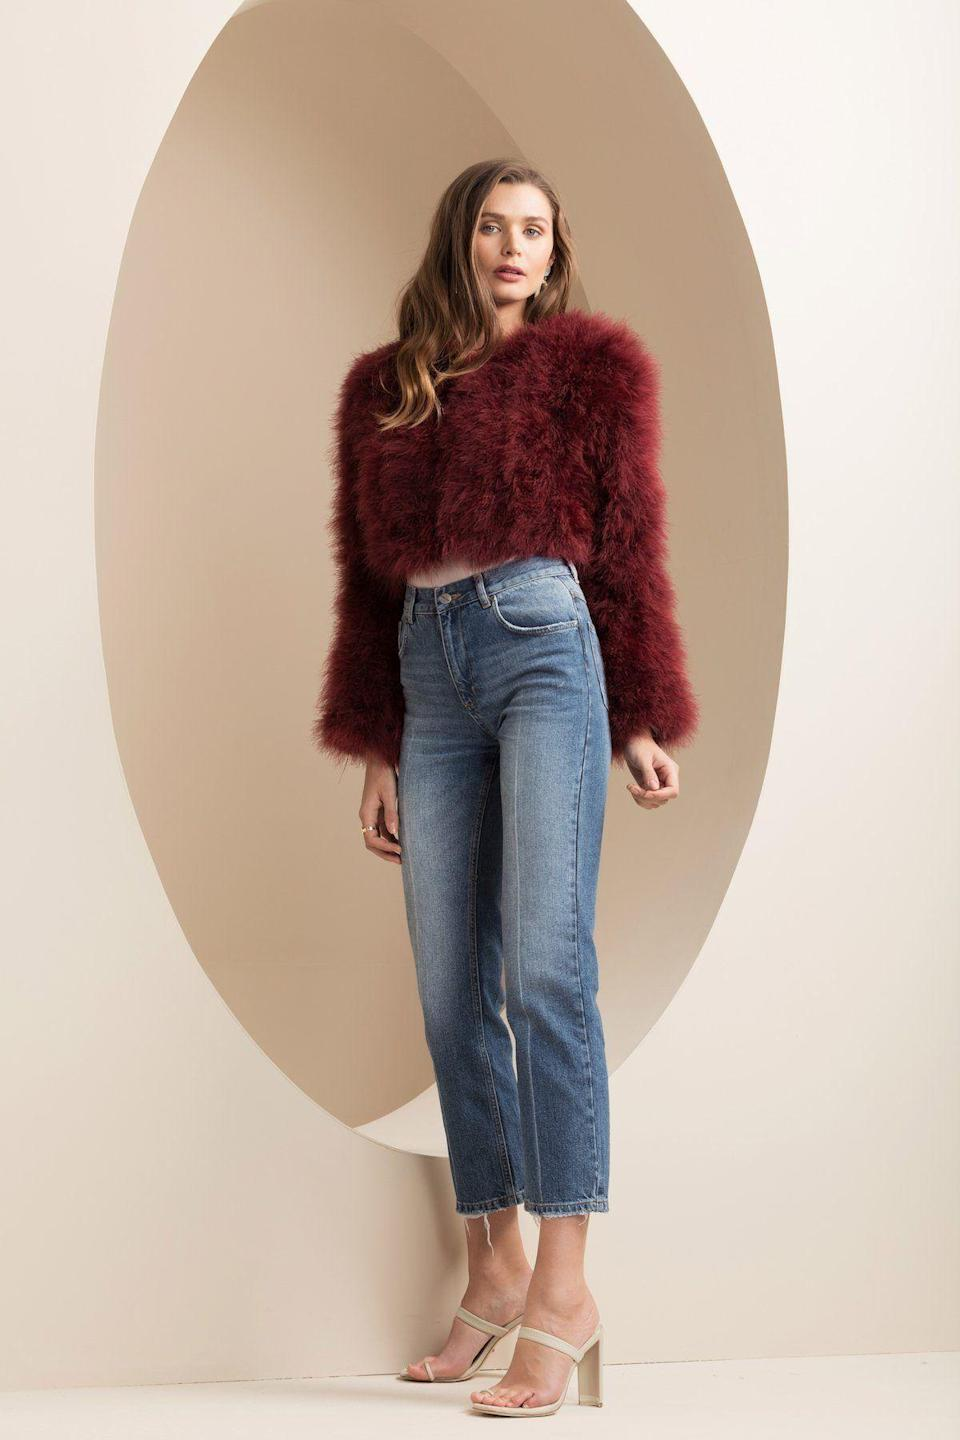 "<p>bubishluxe.us</p><p><strong>$345.00</strong></p><p><a href=""https://bubishluxe.us/collections/jackets-1/products/manhattan-feather-jacket-burgundy"" rel=""nofollow noopener"" target=""_blank"" data-ylk=""slk:Shop Now"" class=""link rapid-noclick-resp"">Shop Now</a></p><p>Cropped, up-cycled marabou feather in a rich wine hue? We won't say no to it. </p>"